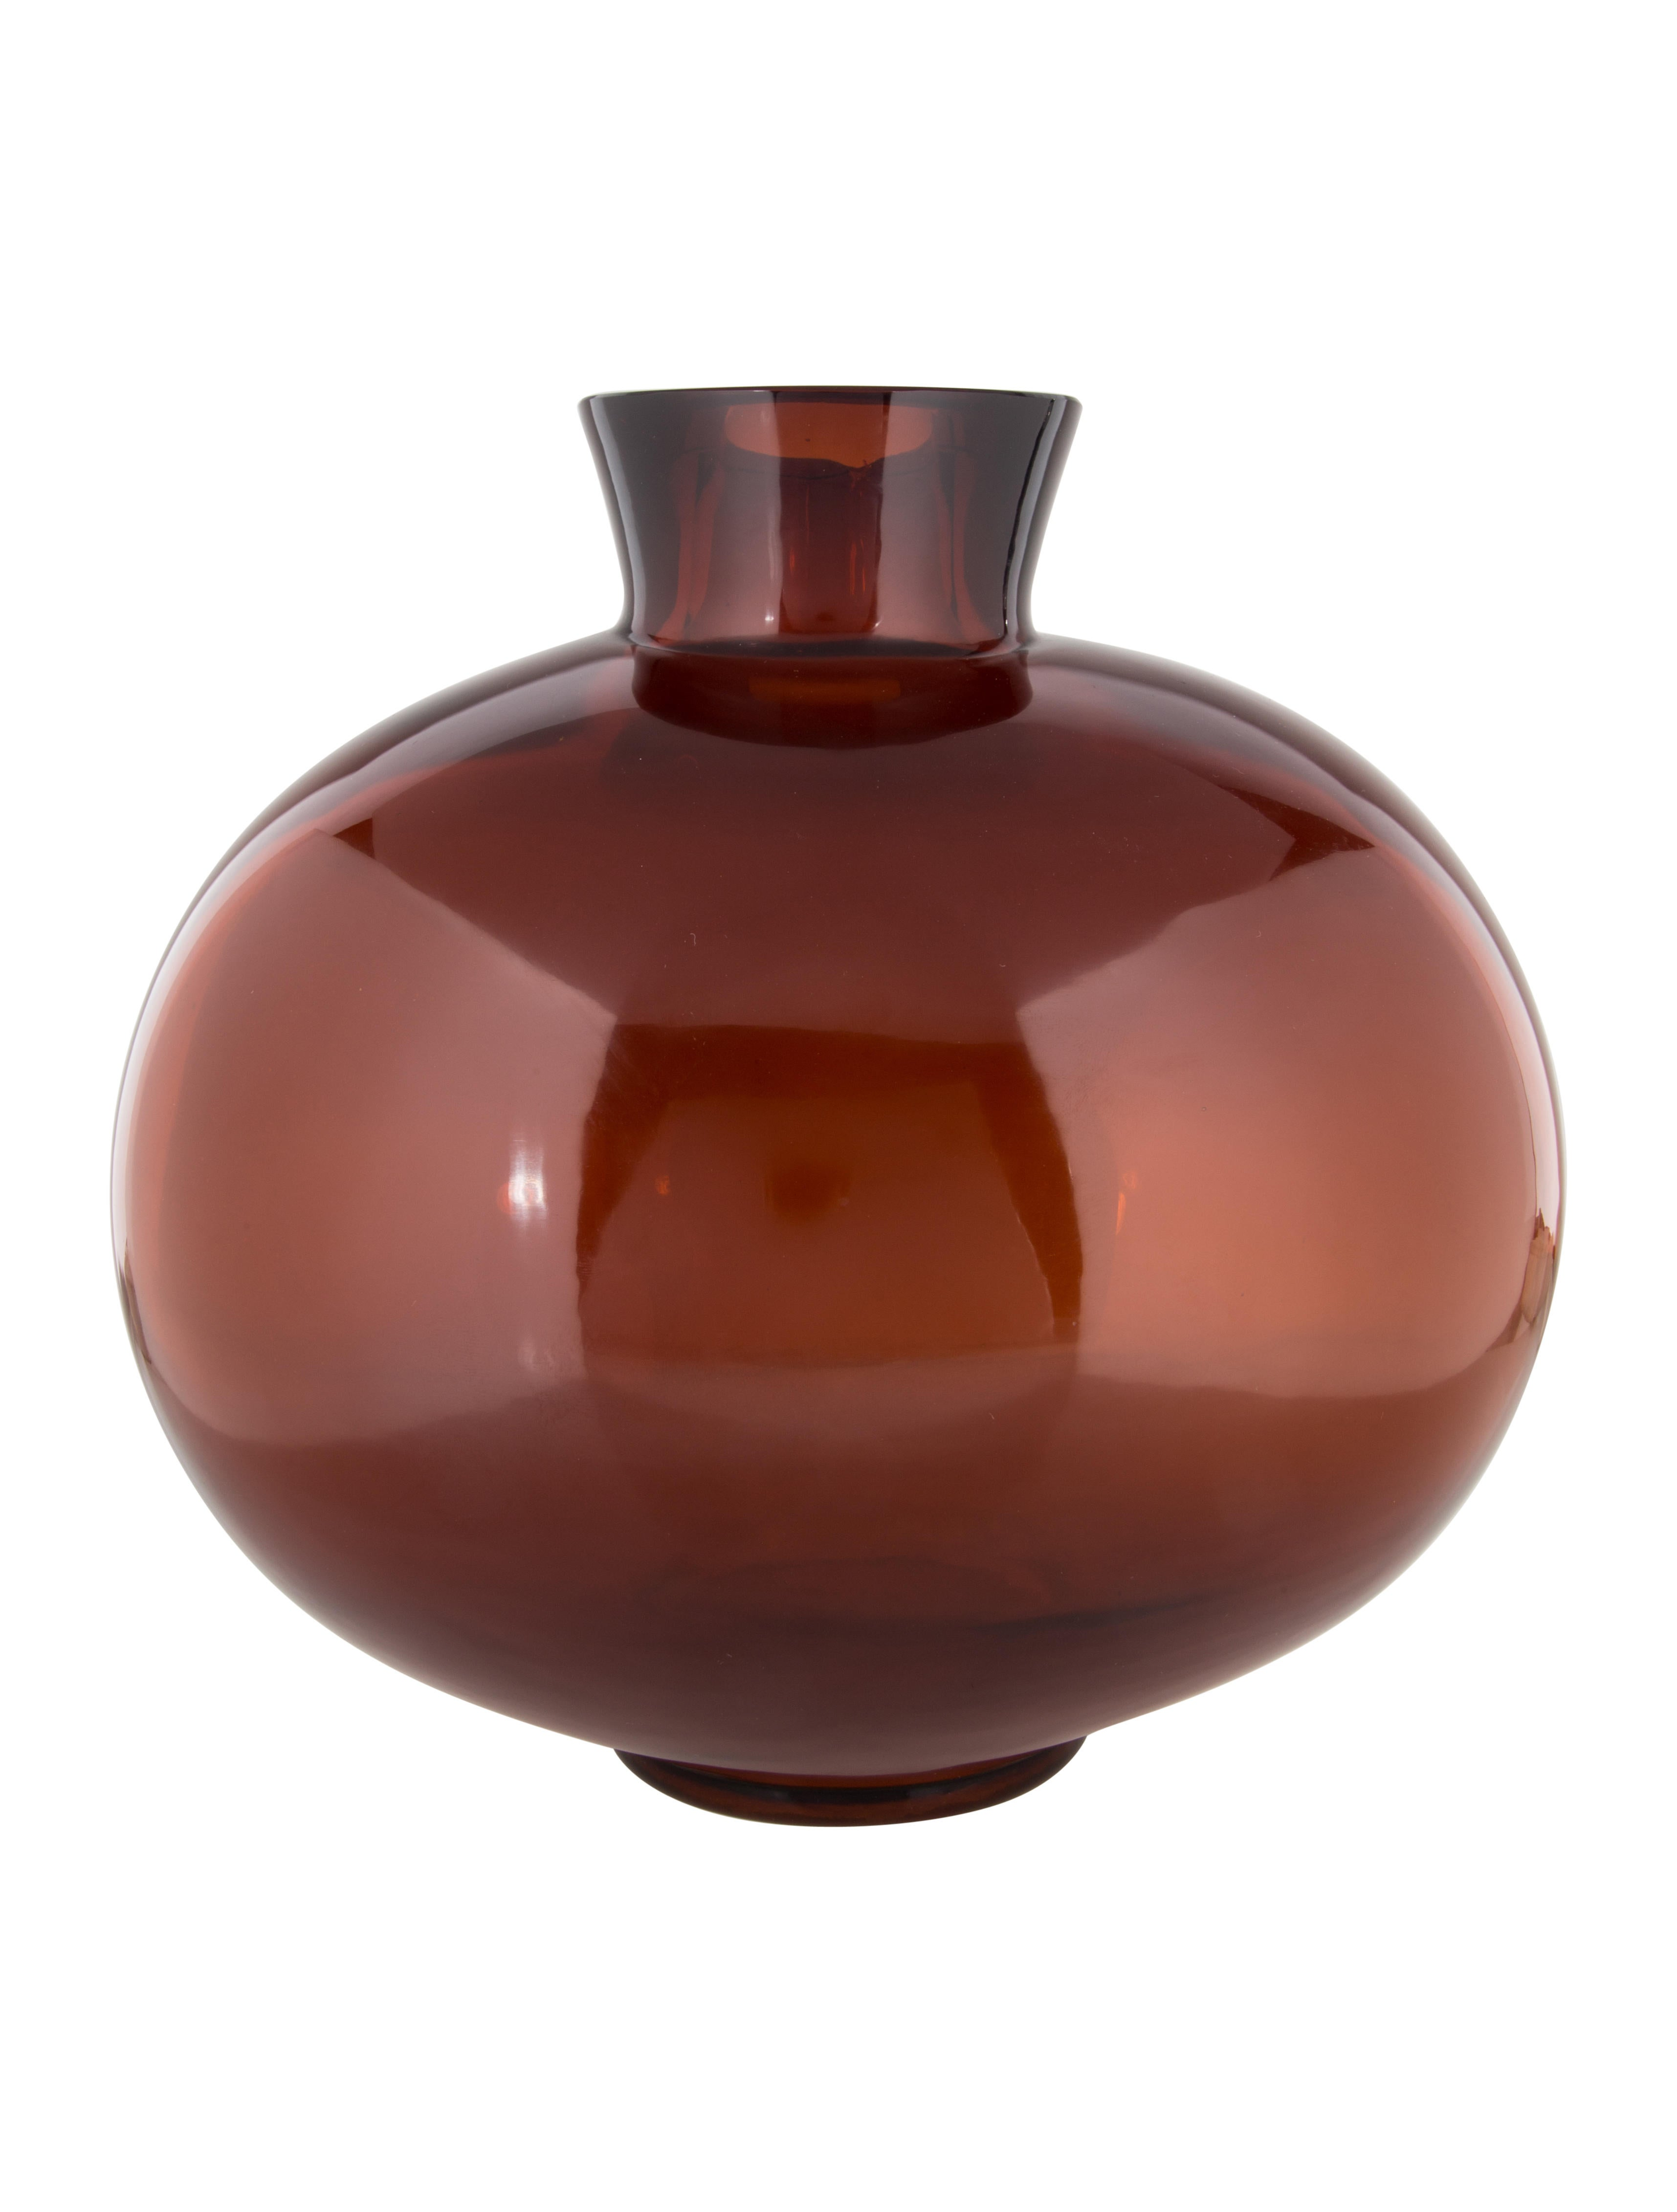 Amber glass cocoon vase decor and accessories decor21994 the amber glass cocoon vase floridaeventfo Image collections